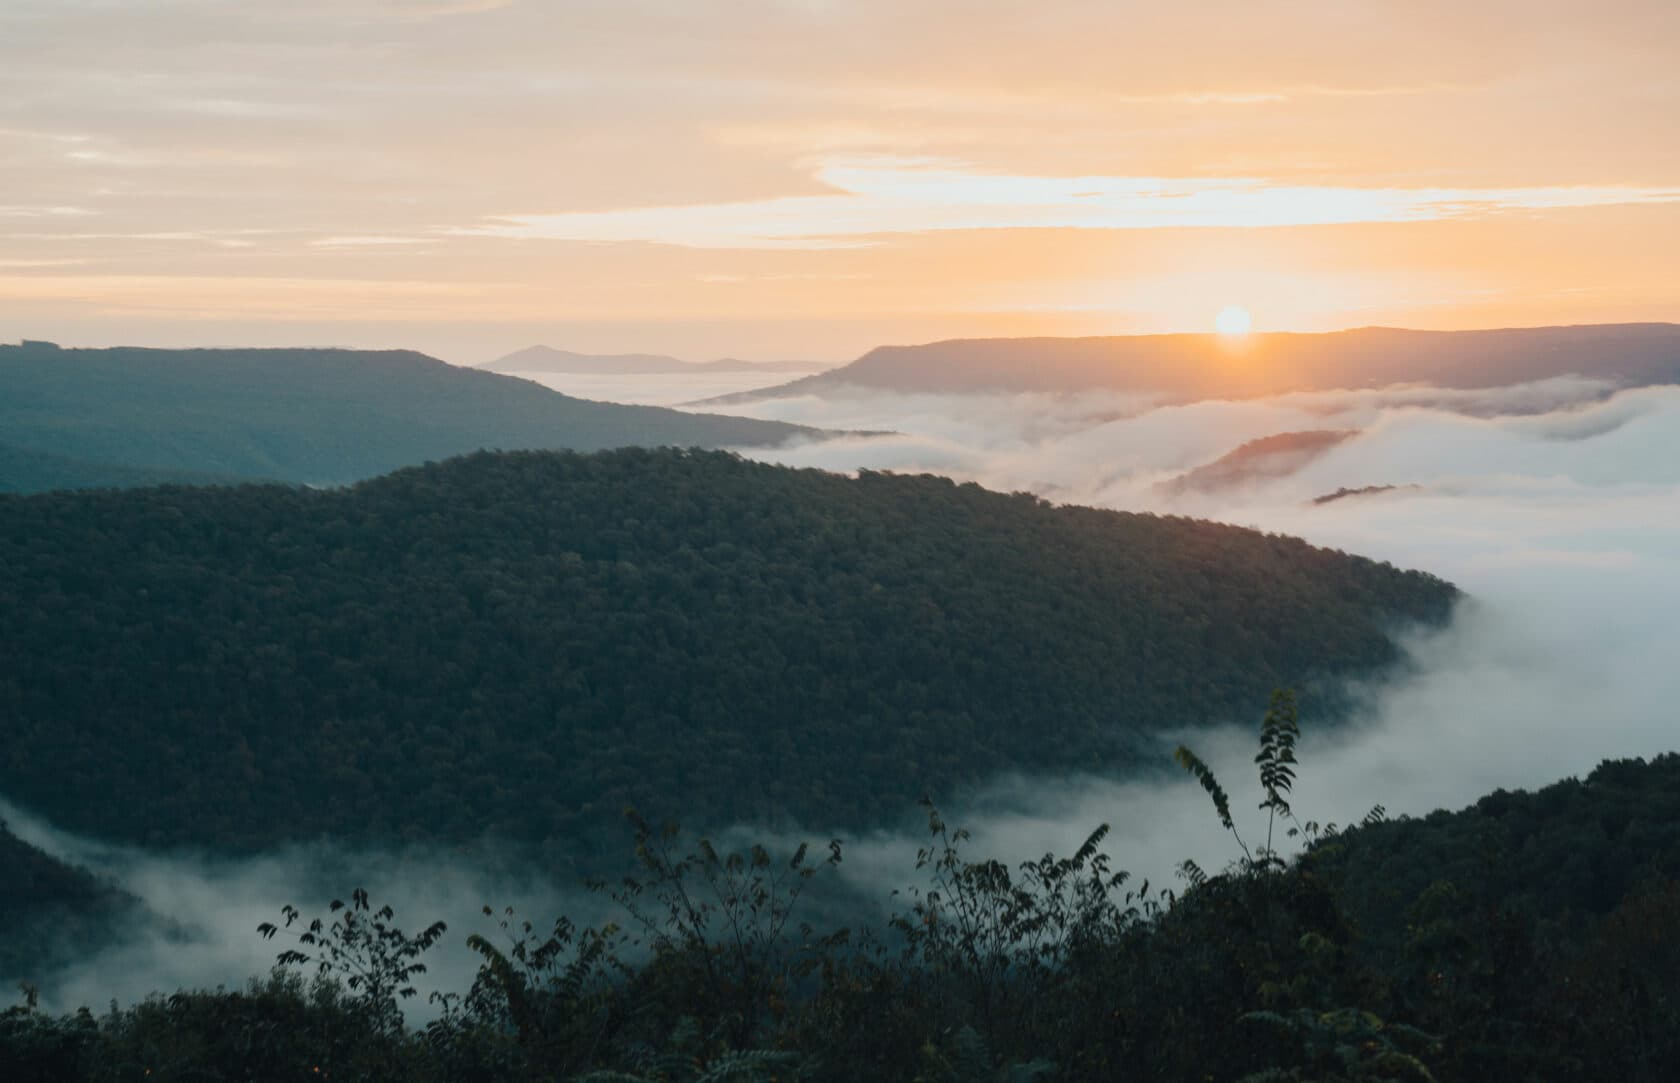 sunrise and misty mountain tops